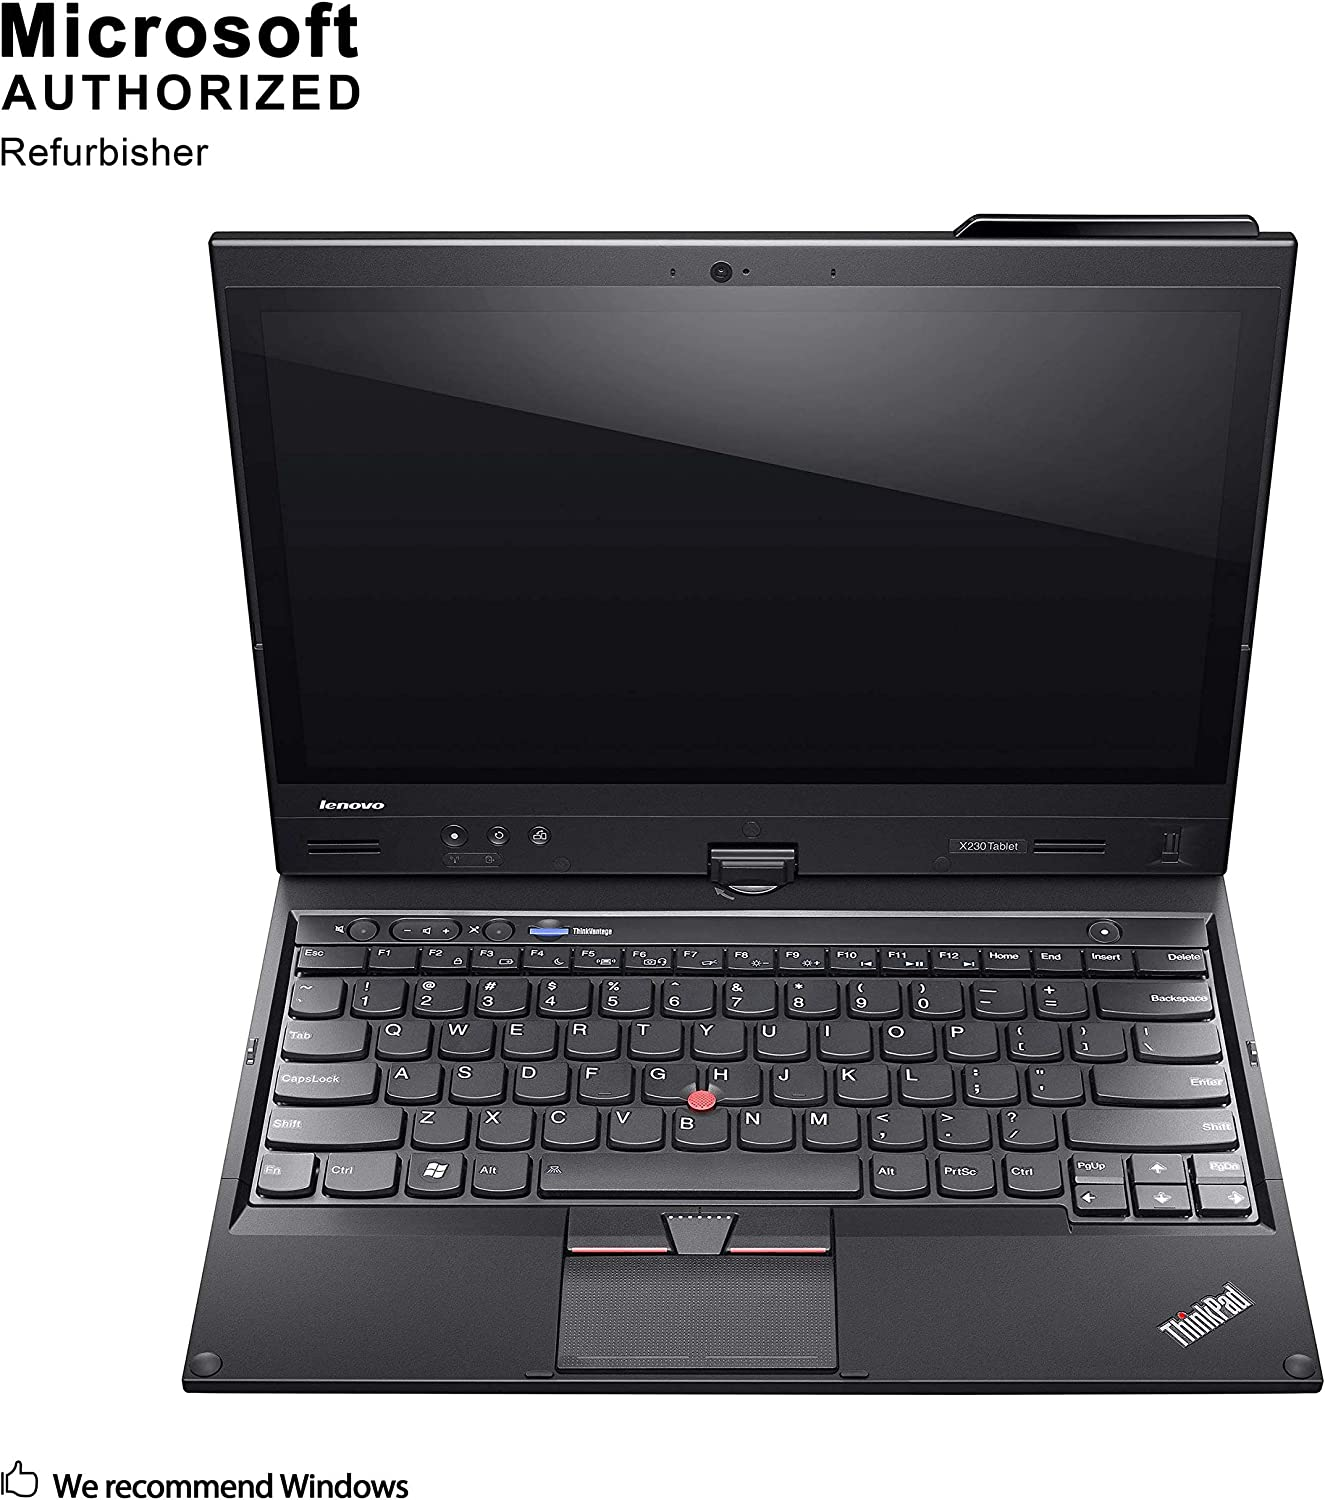 Lenovo ThinkPad X230t 12.5 Inch Convertible Laptop, Intel Core i5 3320M up to 3.3GHz, 8G DDR3, 500G, WiFi, VGA, mDP, Windows 10 64 Bit Multi-Language Supports English/French/Spanish(Renewed)